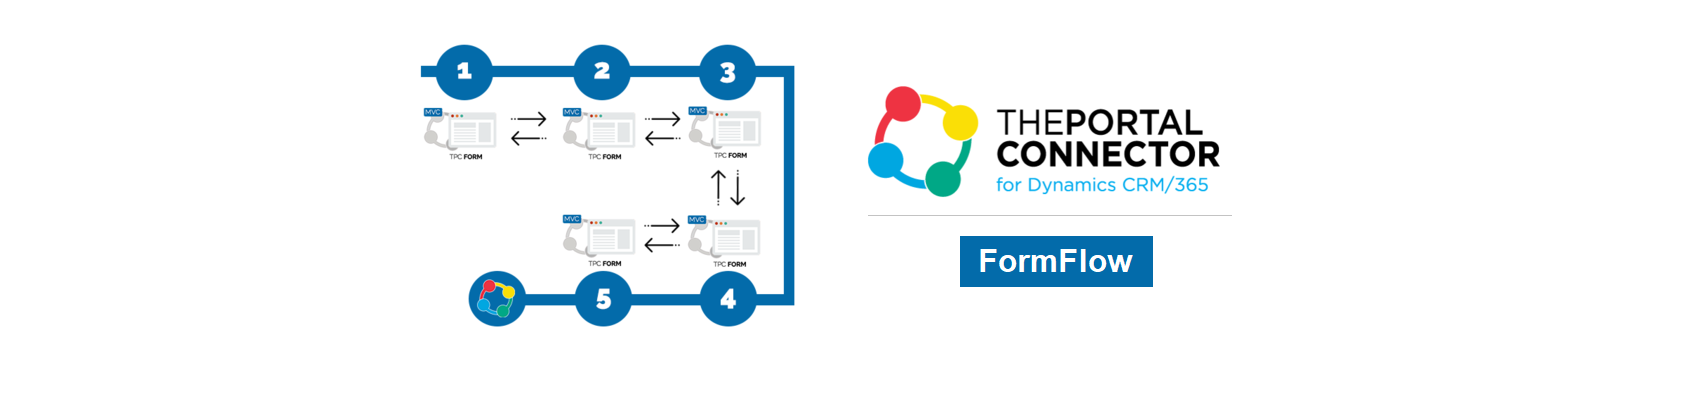 The Portal Connector FormFlow